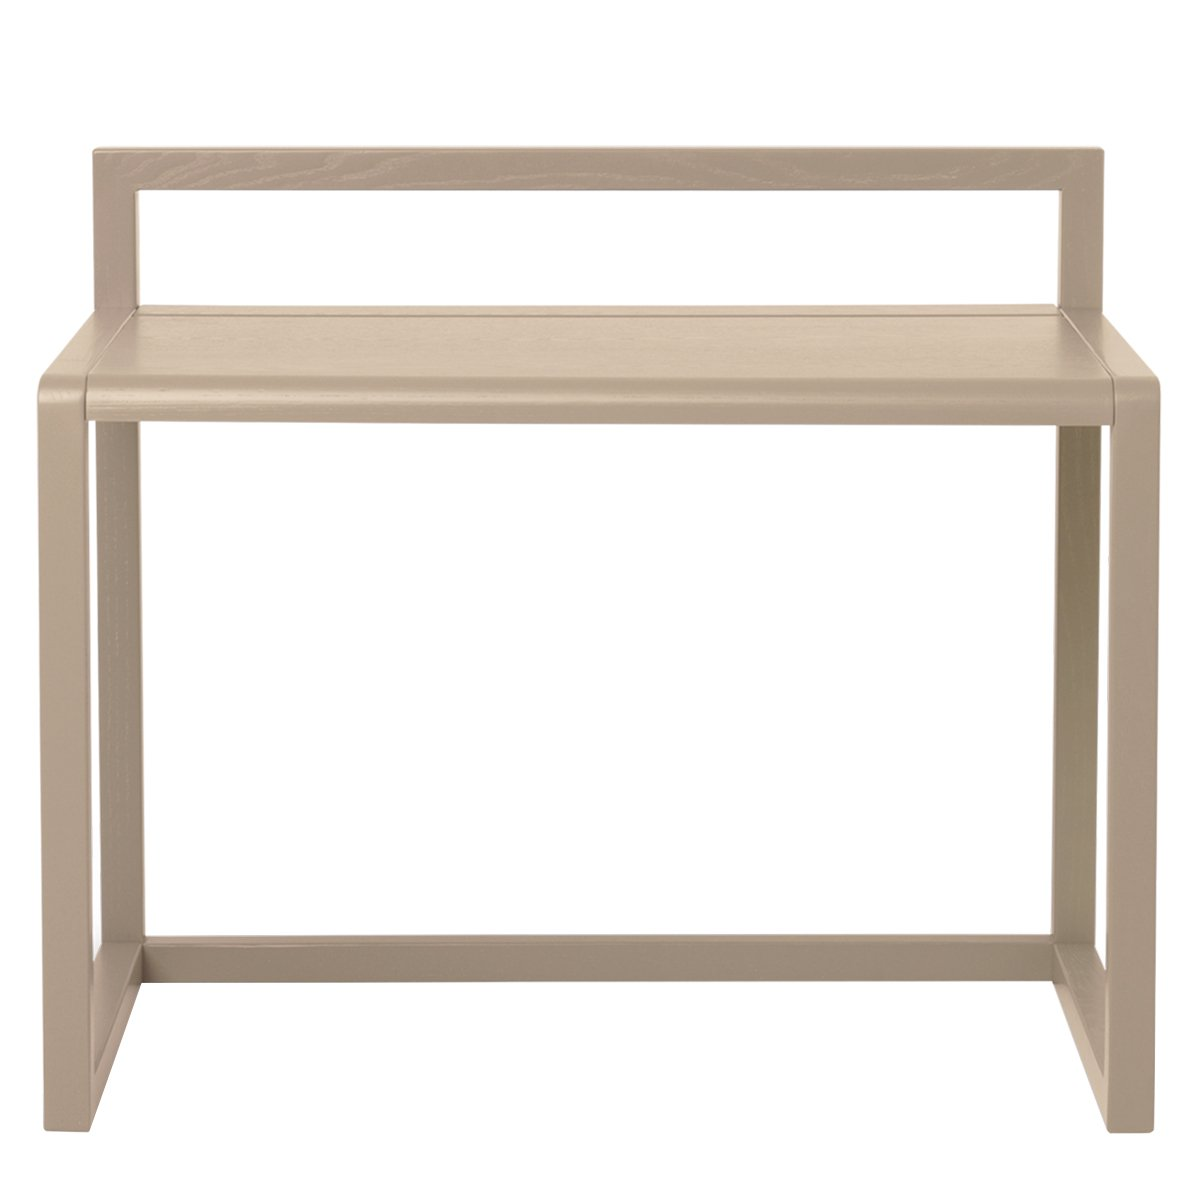 FermLiving Little Architect Bureau - Cashmere